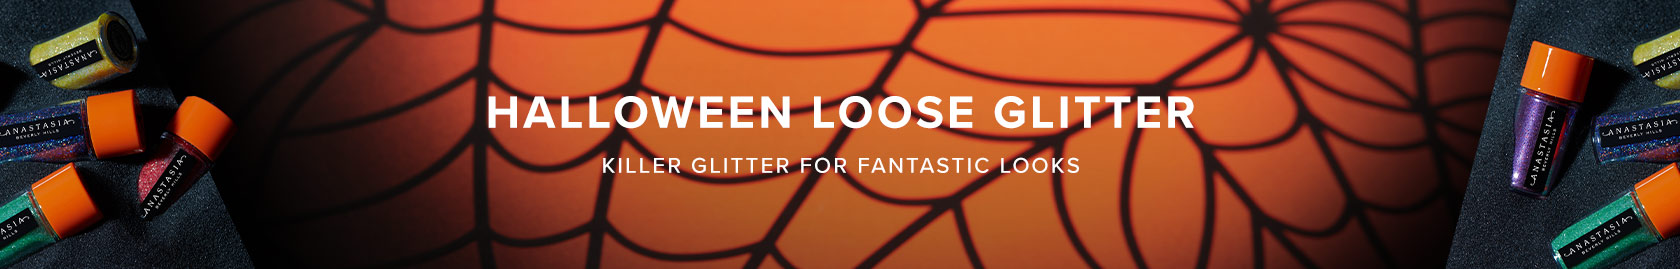 Halloween Loose Glitter - Killer Glitter for Fantastic Looks